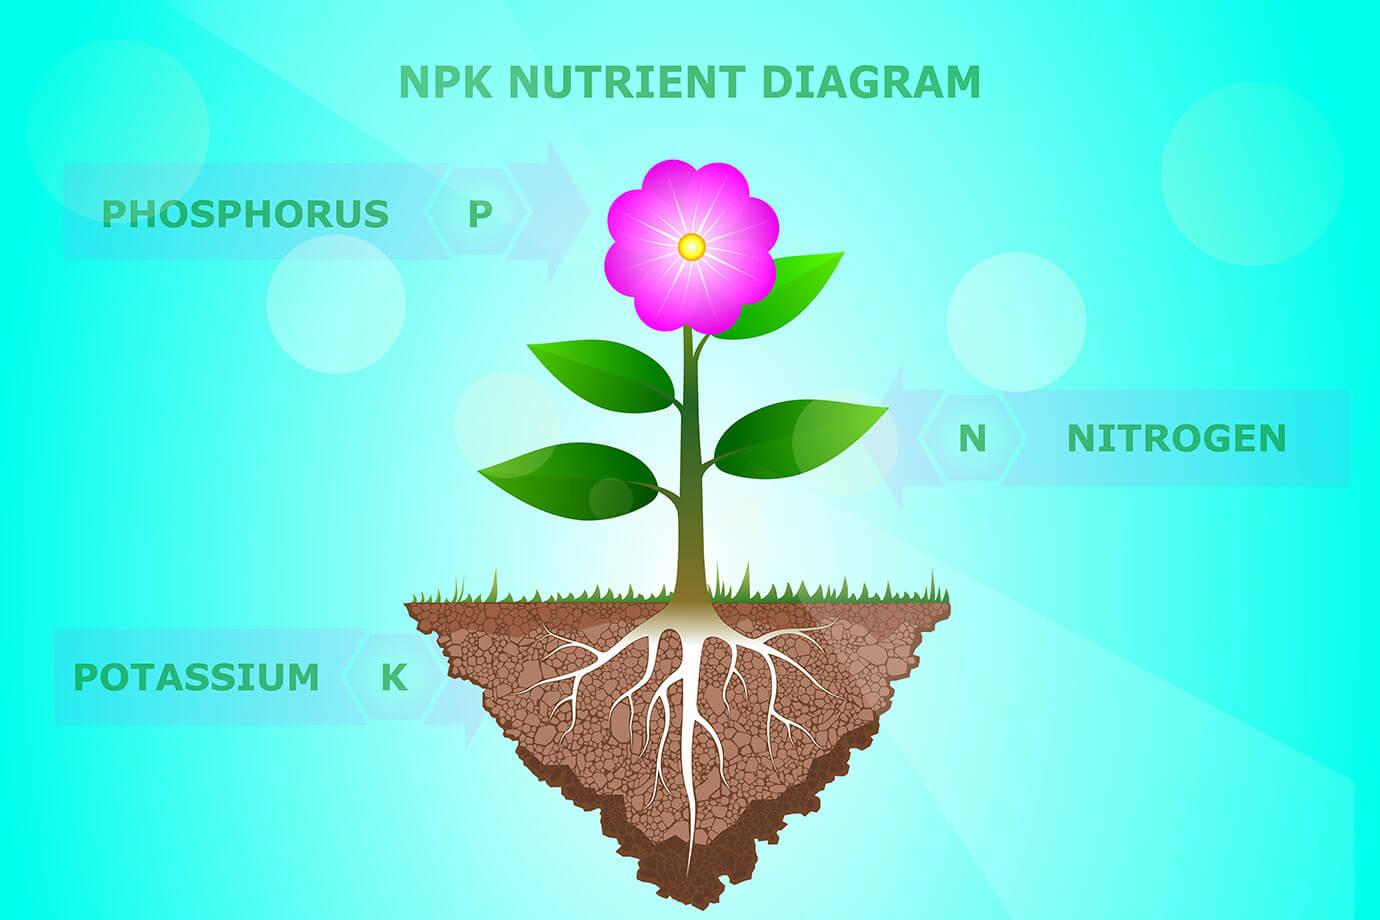 NPK Nutrient Diagram: Nitrogen (N), Phosphorus (P) and Potassium (K)